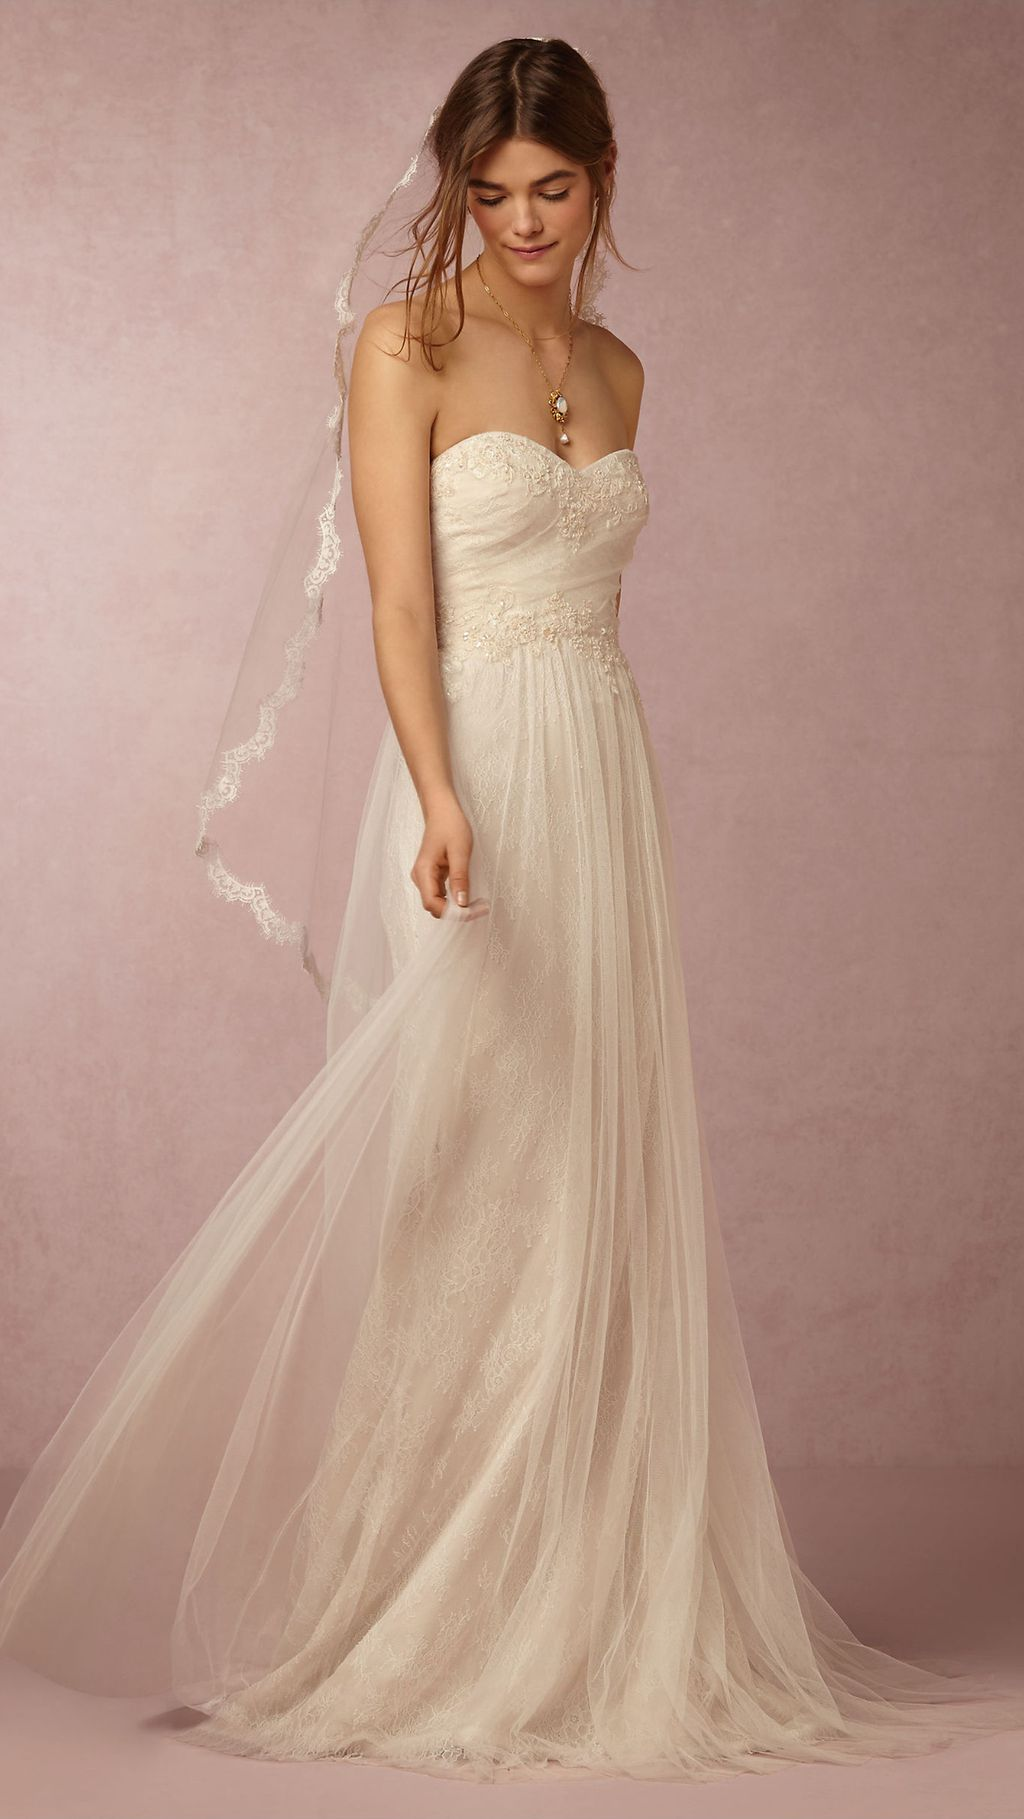 How to get a Marchesa wedding gown for less than $2500